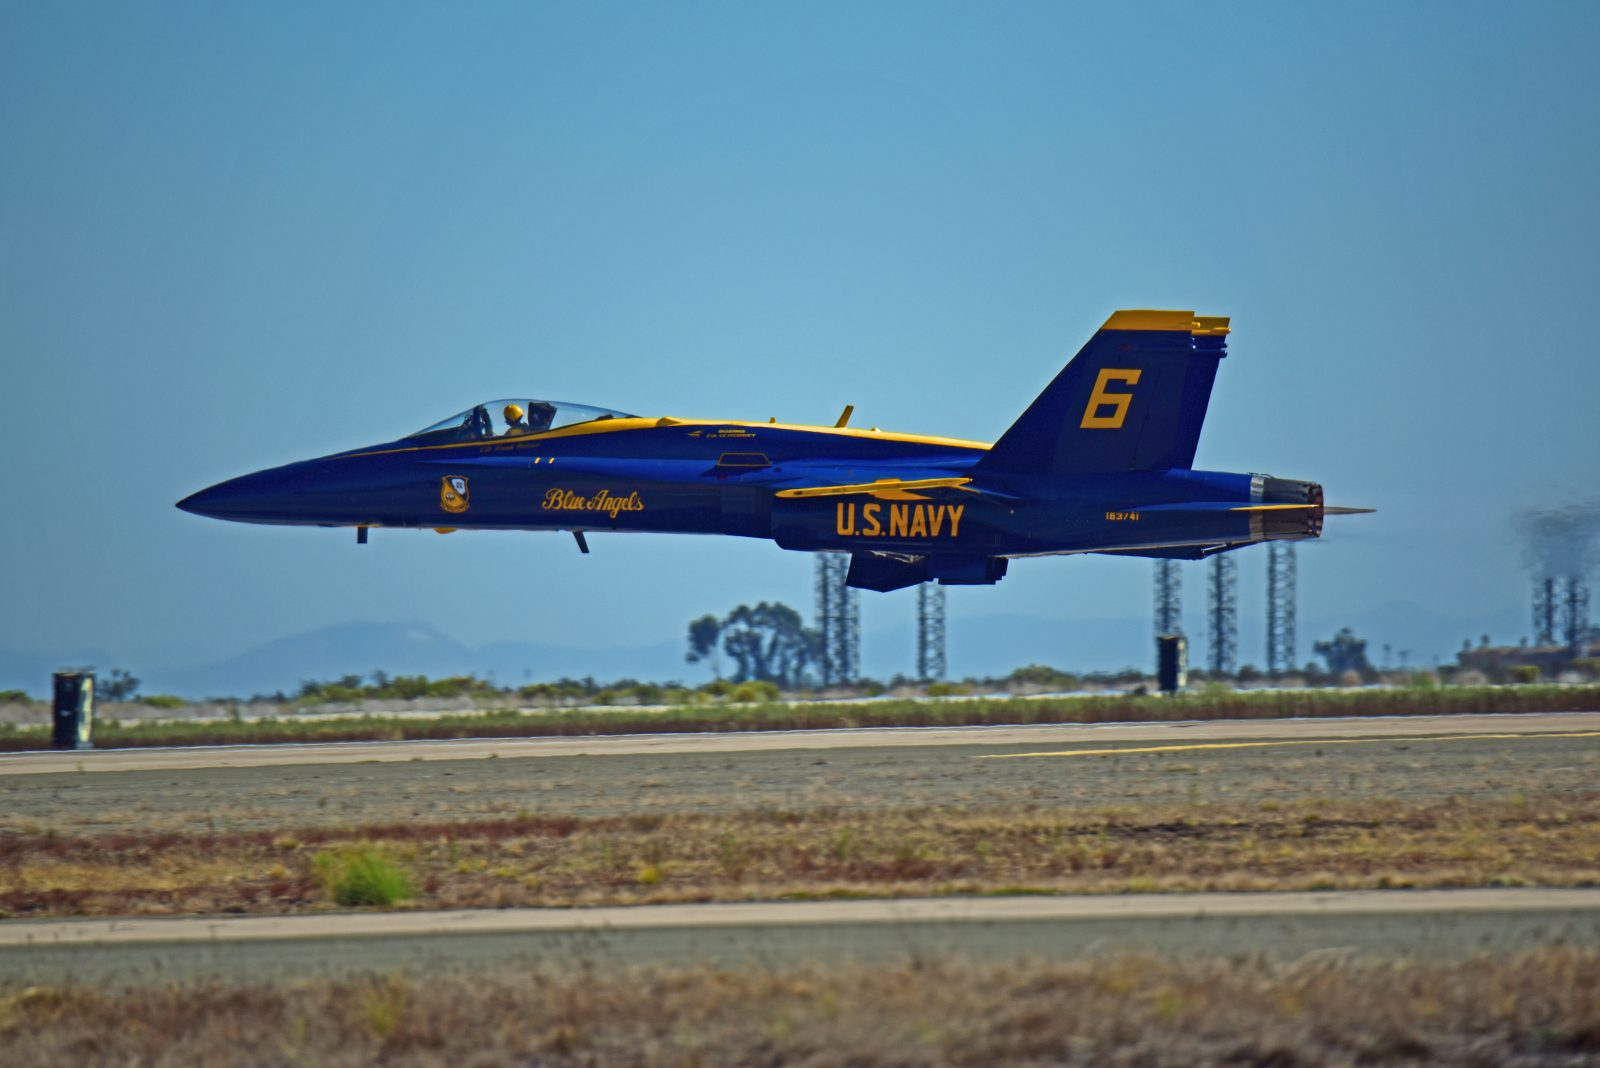 Blue Angels Solo #6 Low Altitude Transition